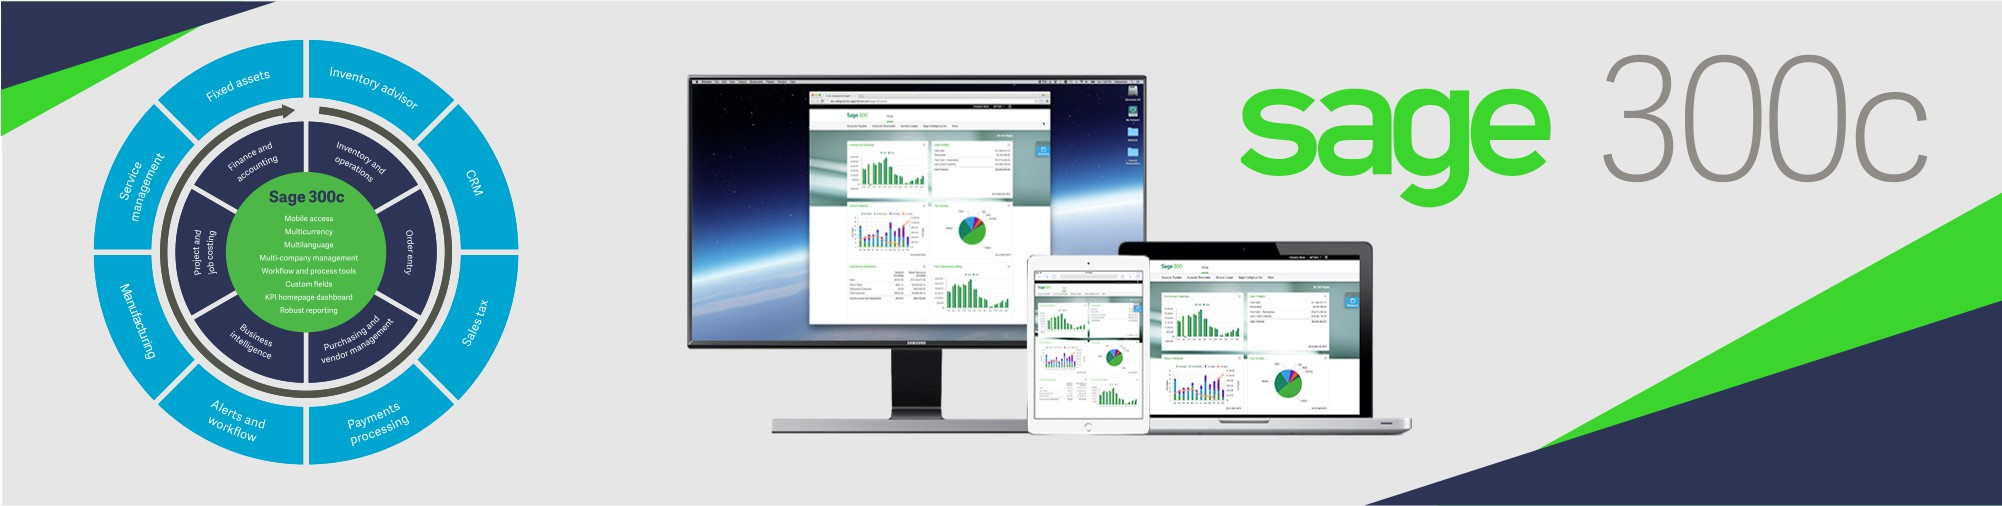 Sage 300 Cloud | Your business Software solution on Multiple devices